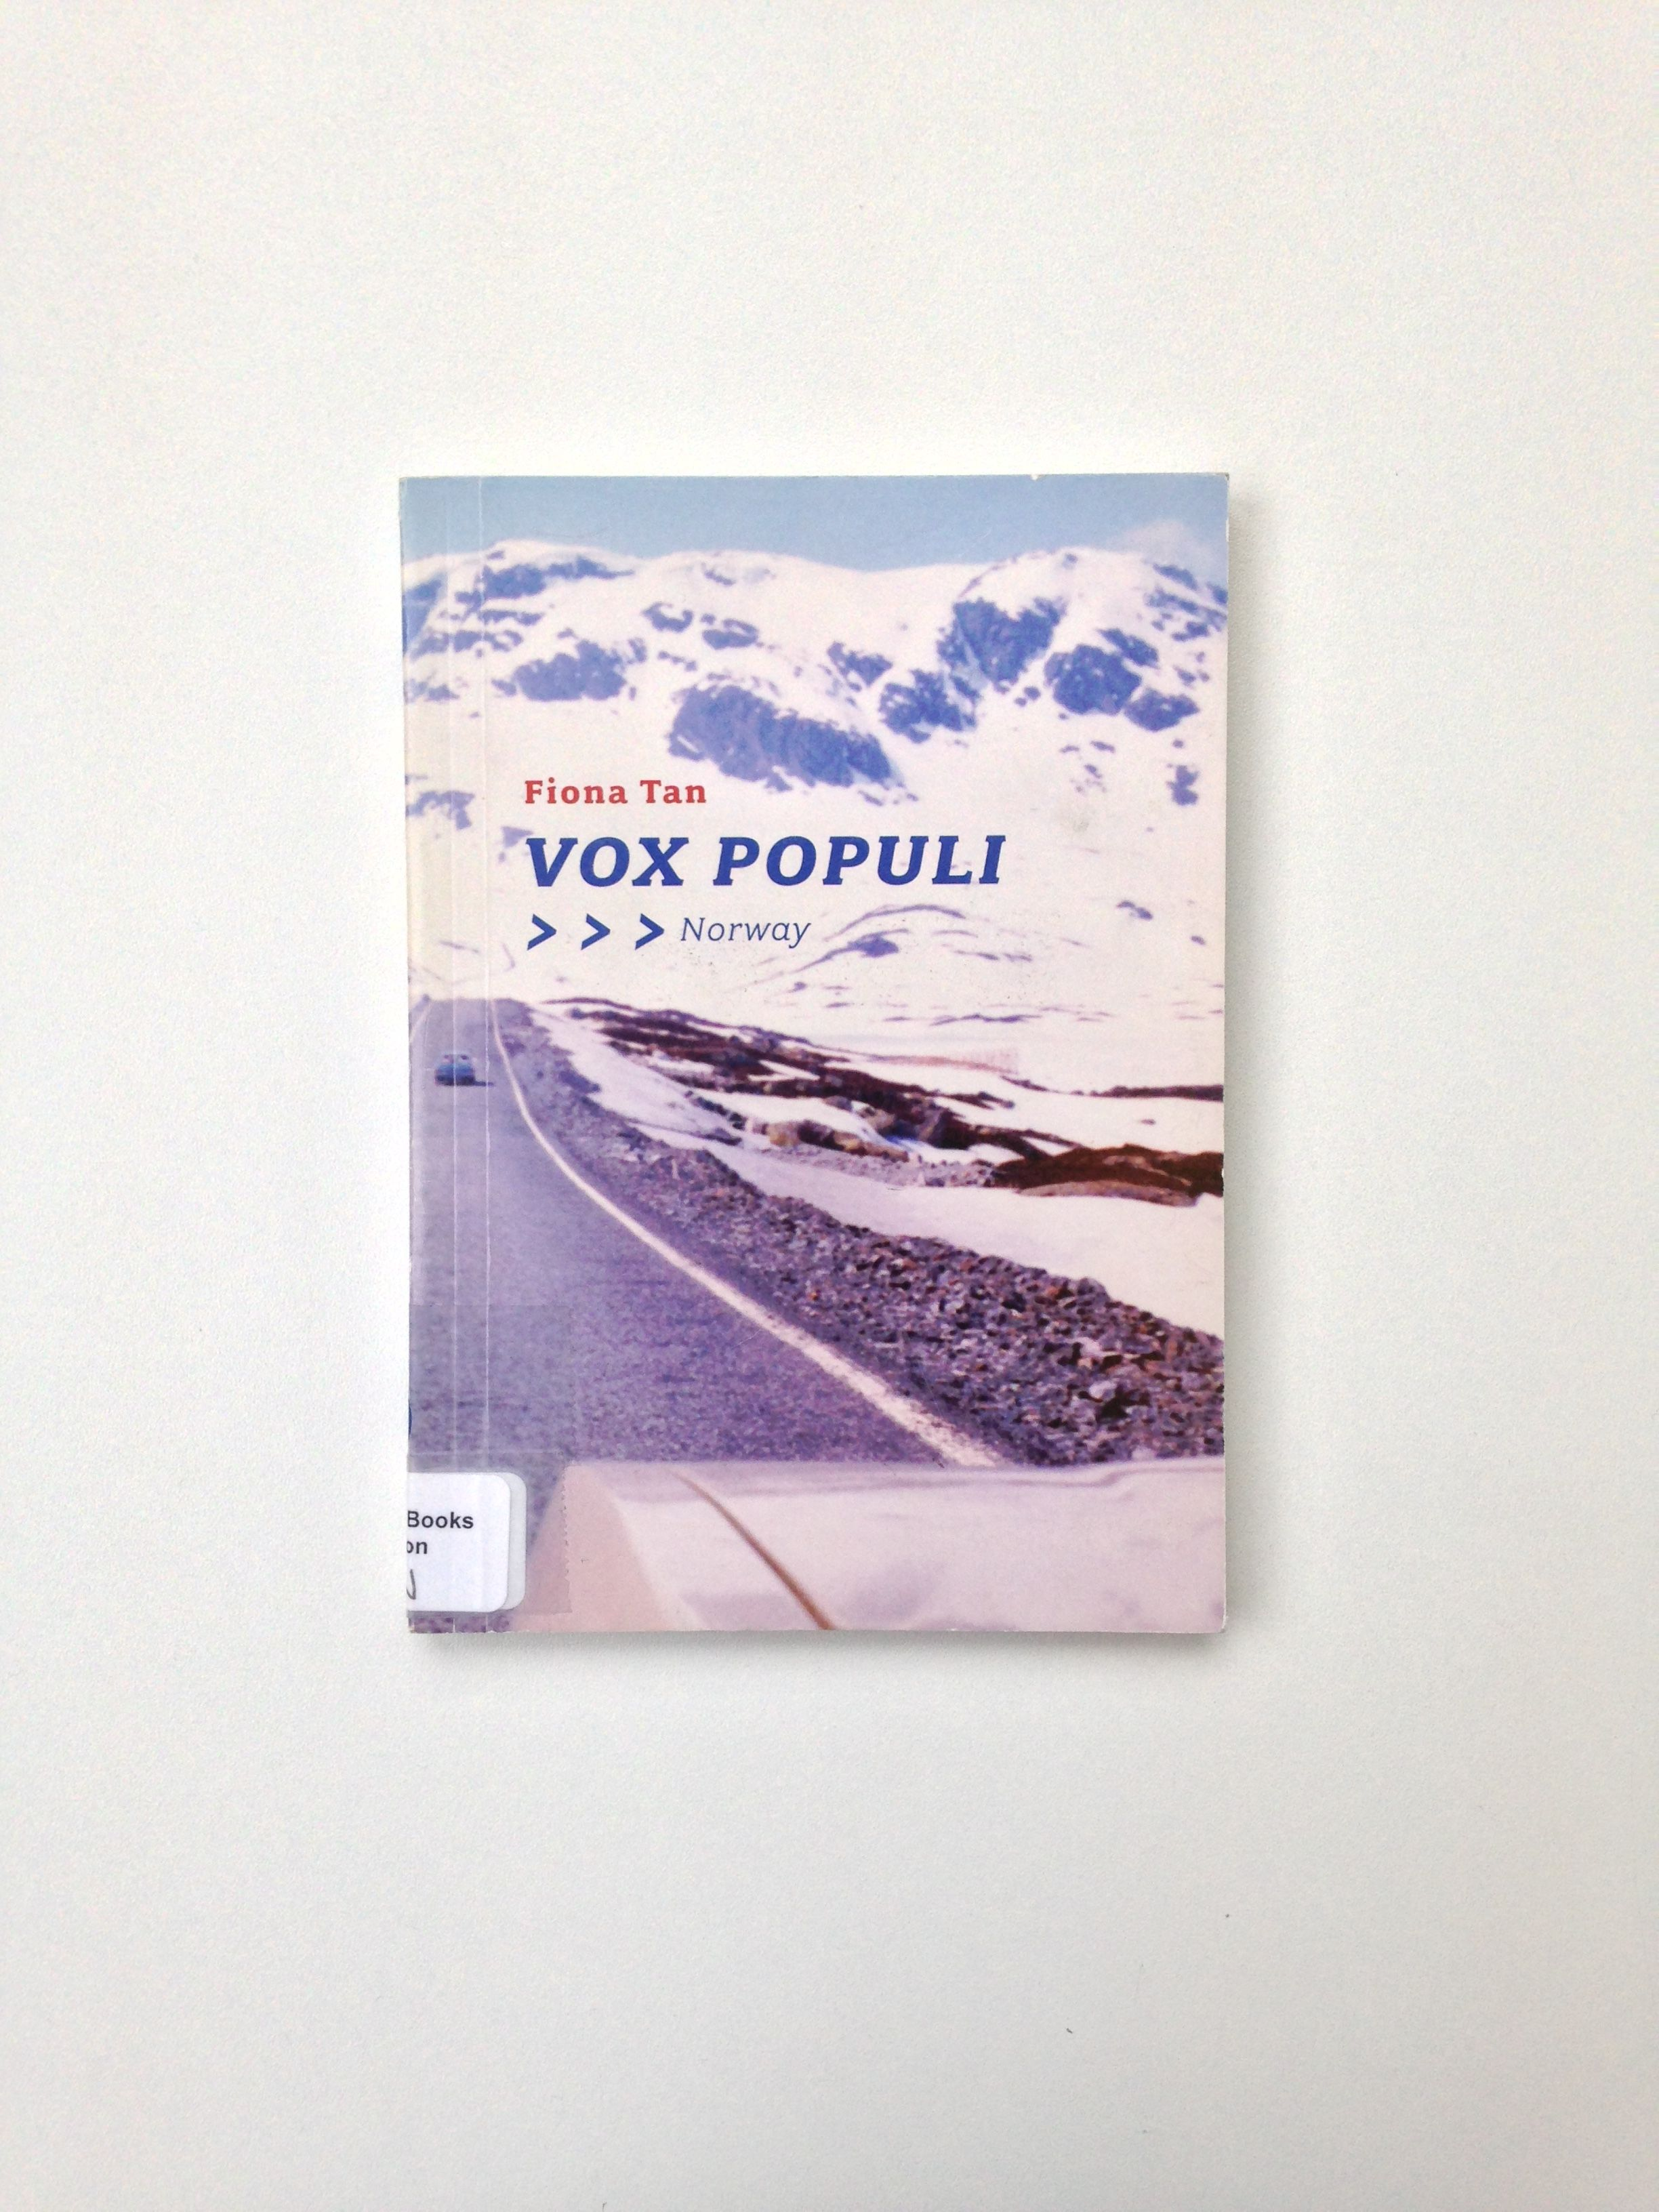 Vox populi Norway, Fiona Tan Glasgow school of art, Vox